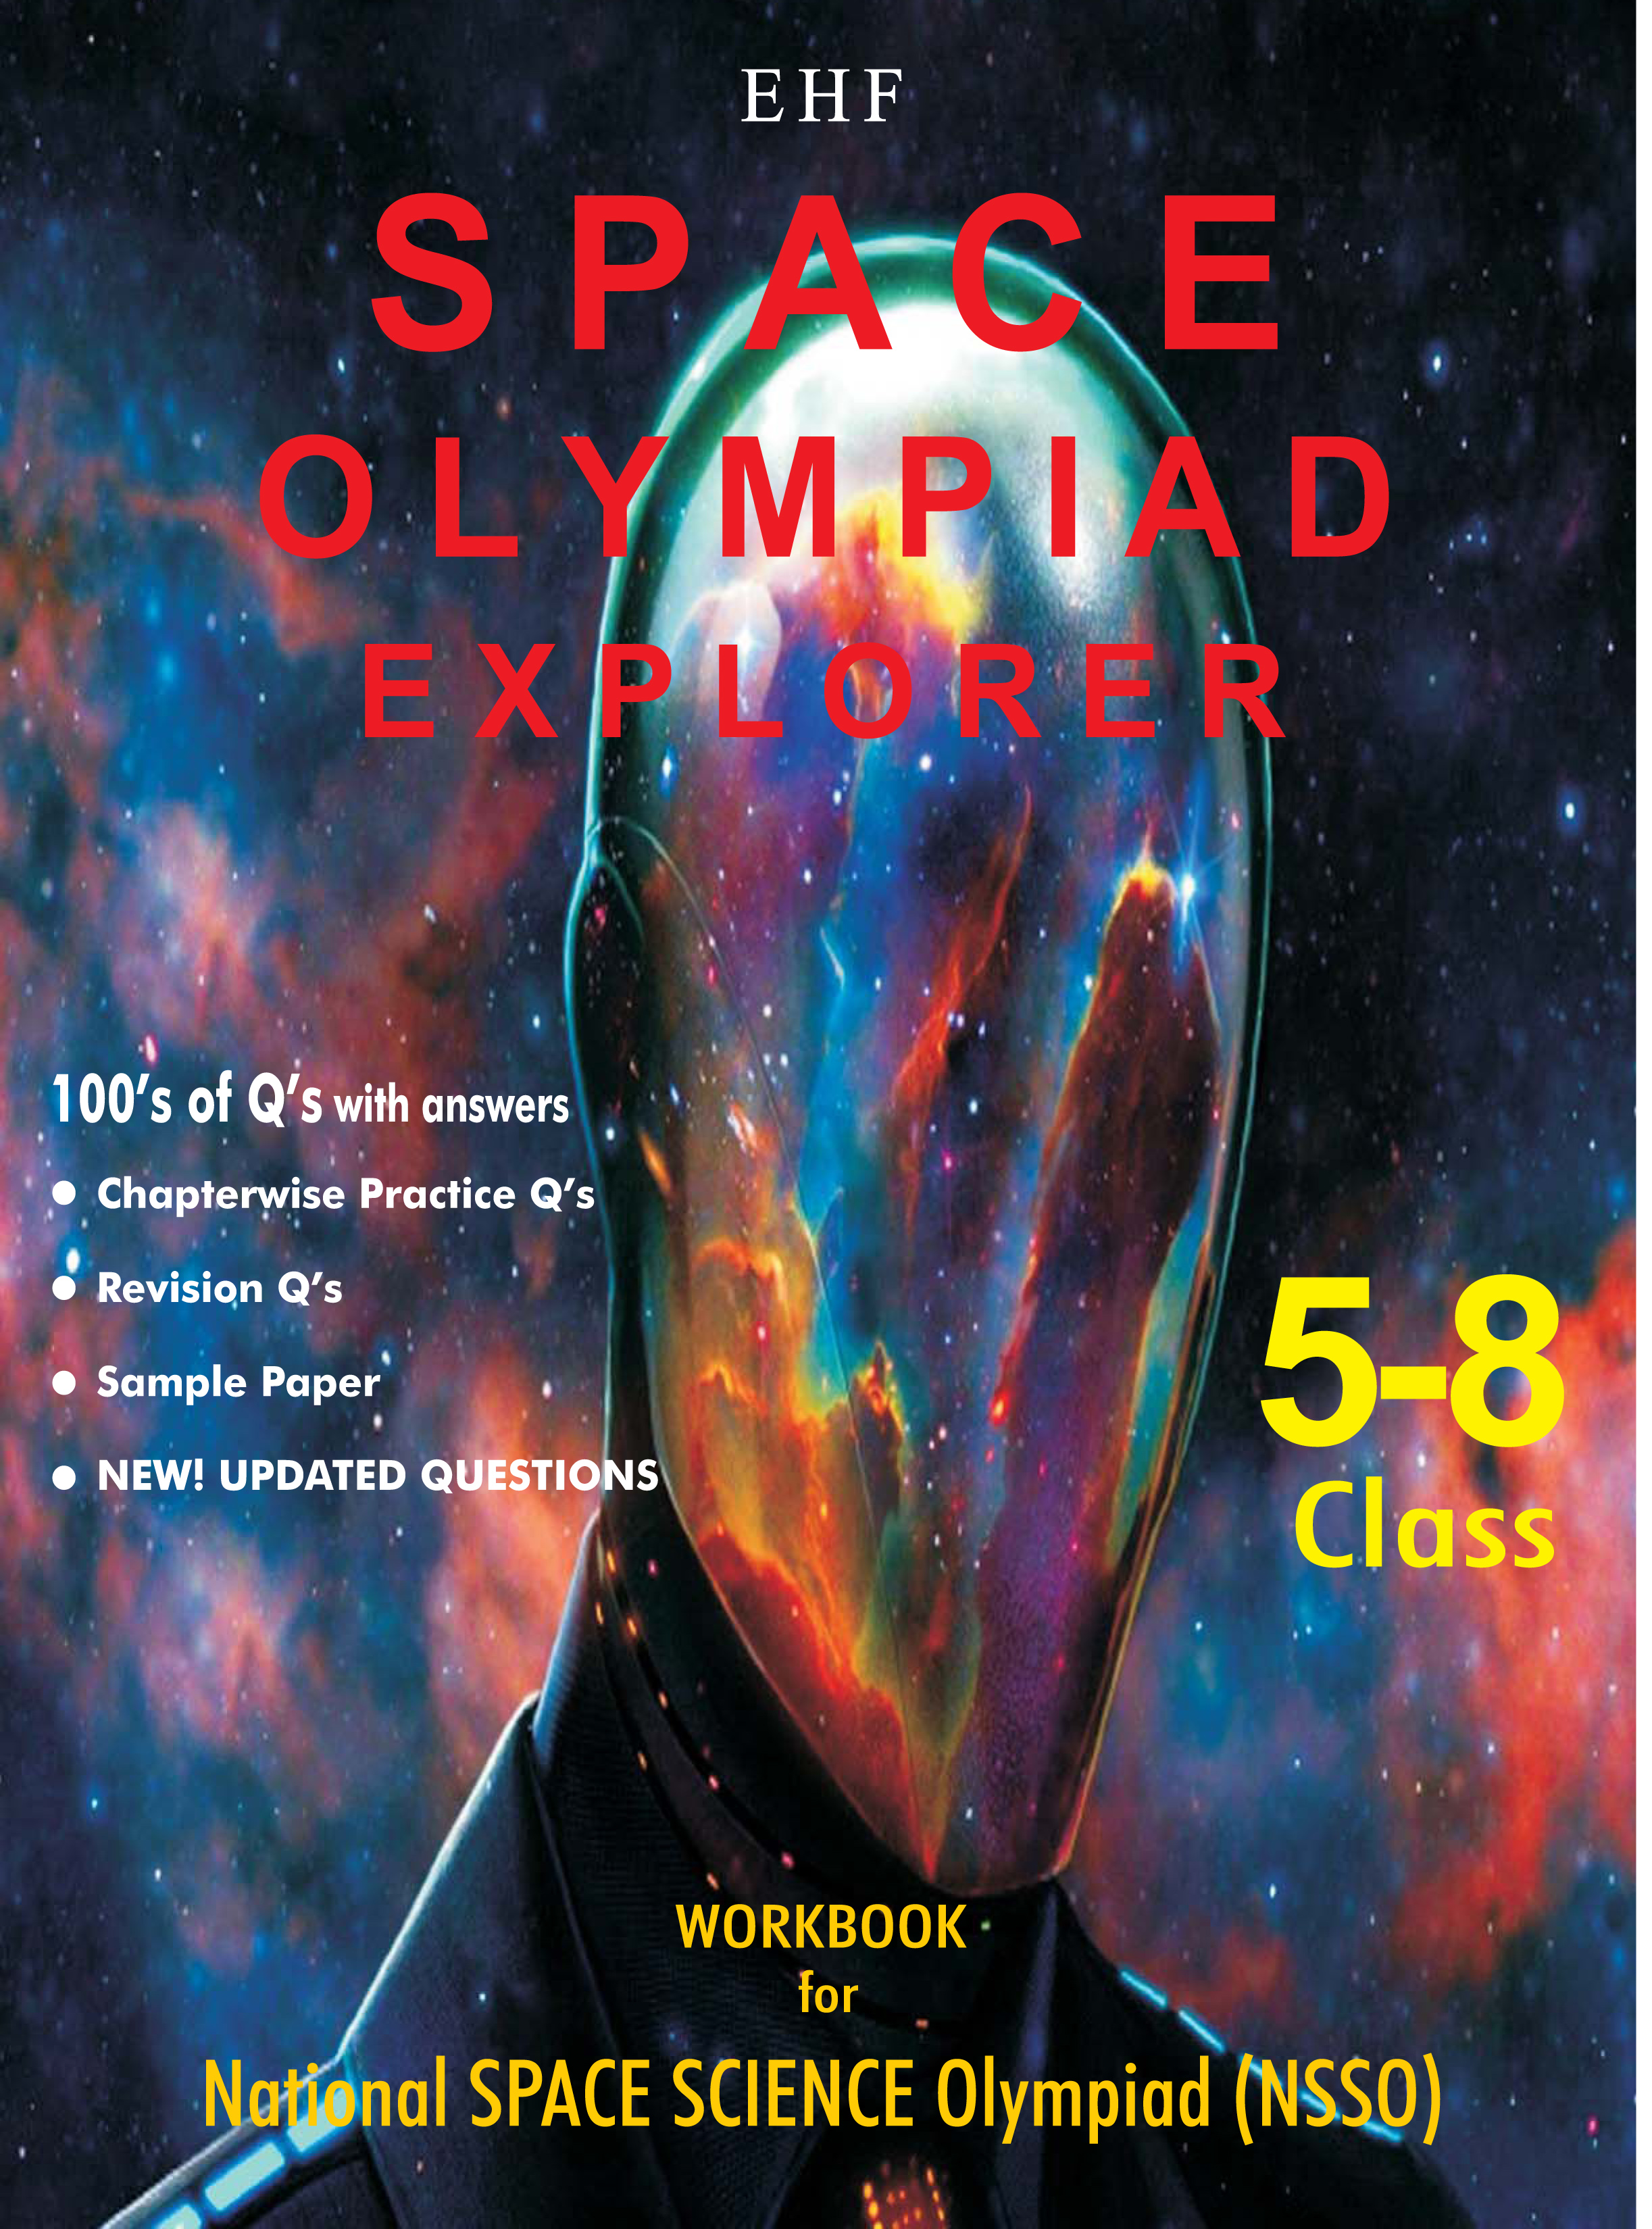 Space Olympiad Explorer Class 5-8 (English, Paperback, Dr. Sandeep Ahlawat)